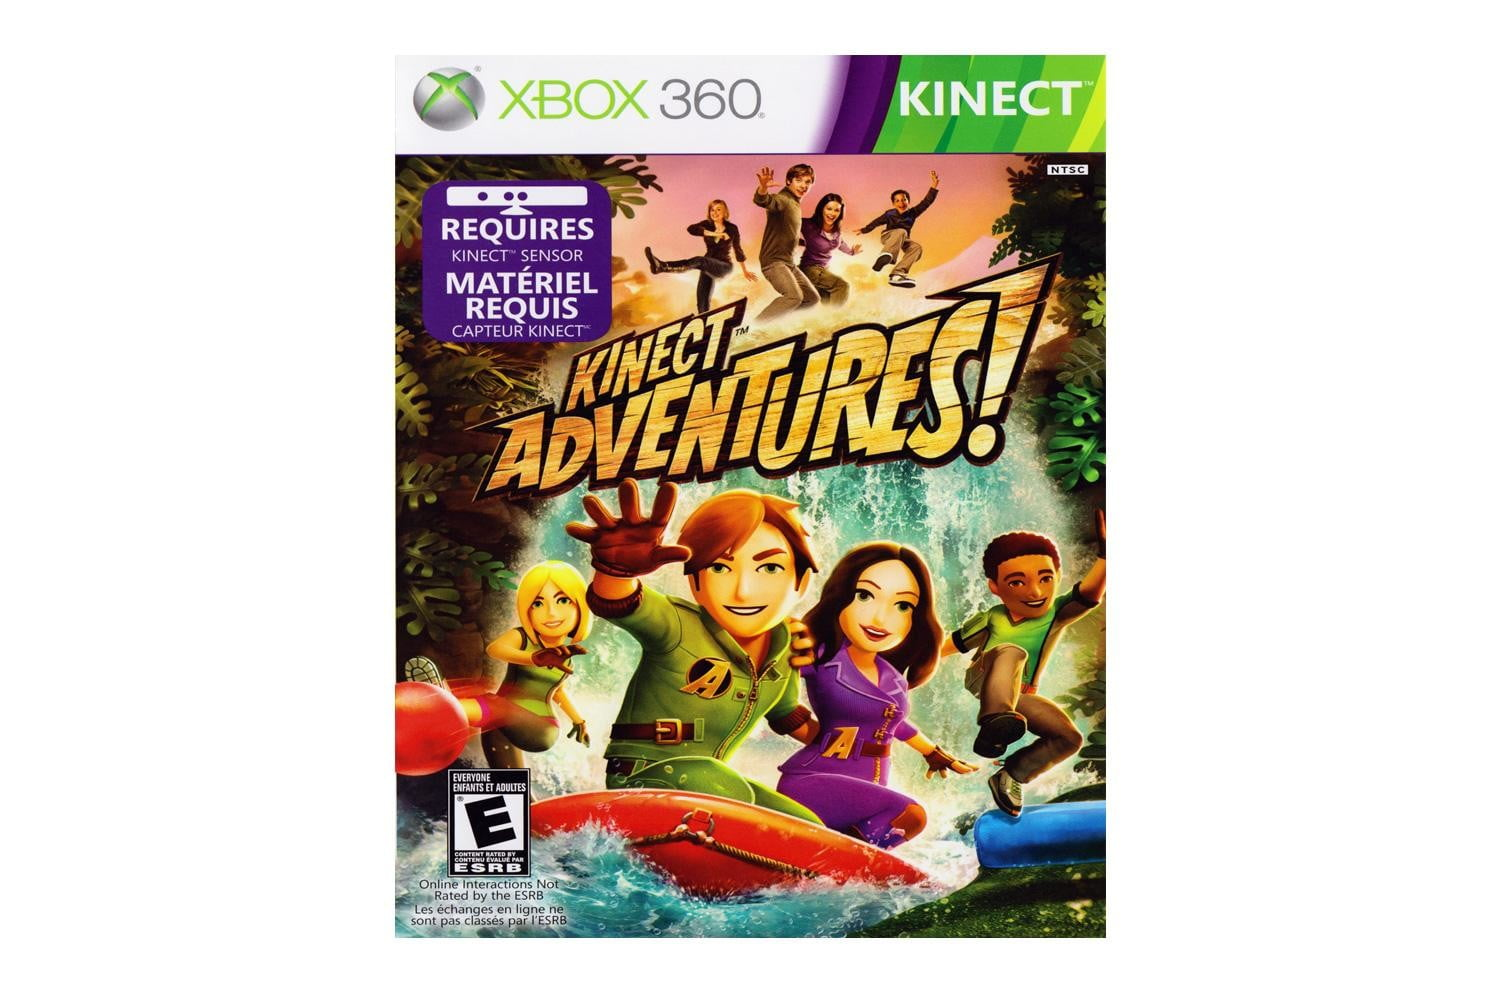 Kinect-Adventures-cover-art